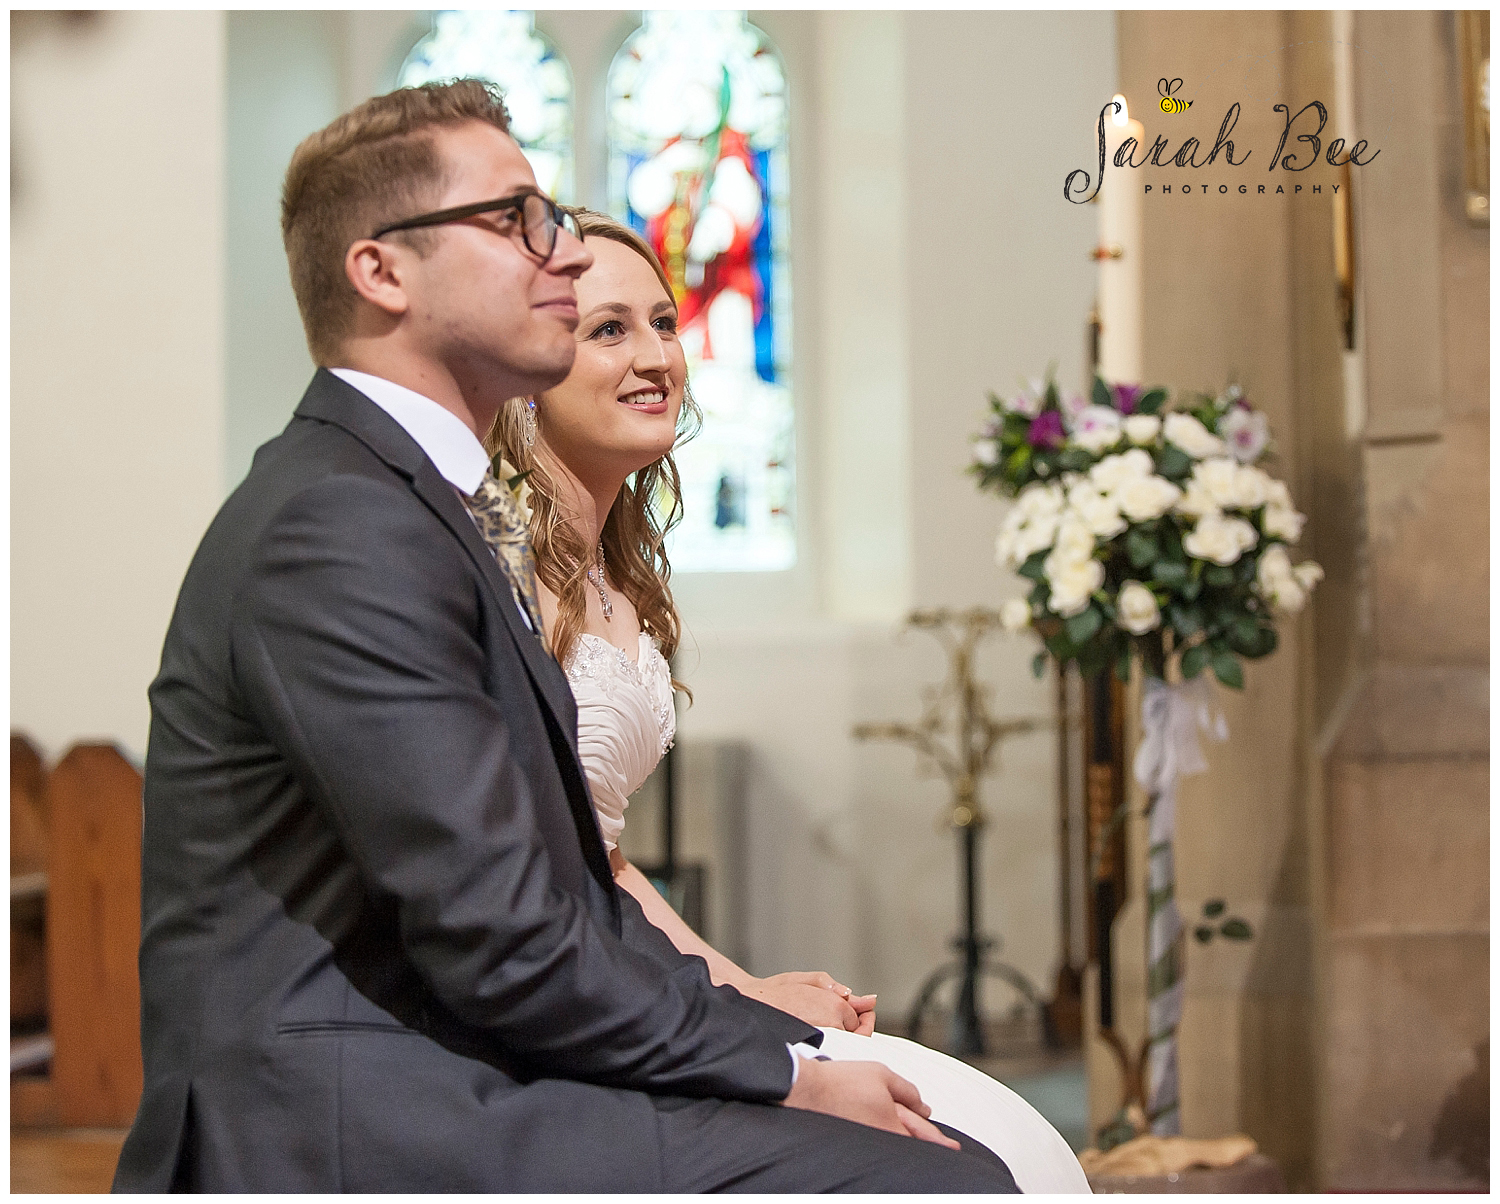 wedding photography with sarah bee photography, Peruga woodheys glossop, documentory photography wedding photographer_0210.jpg